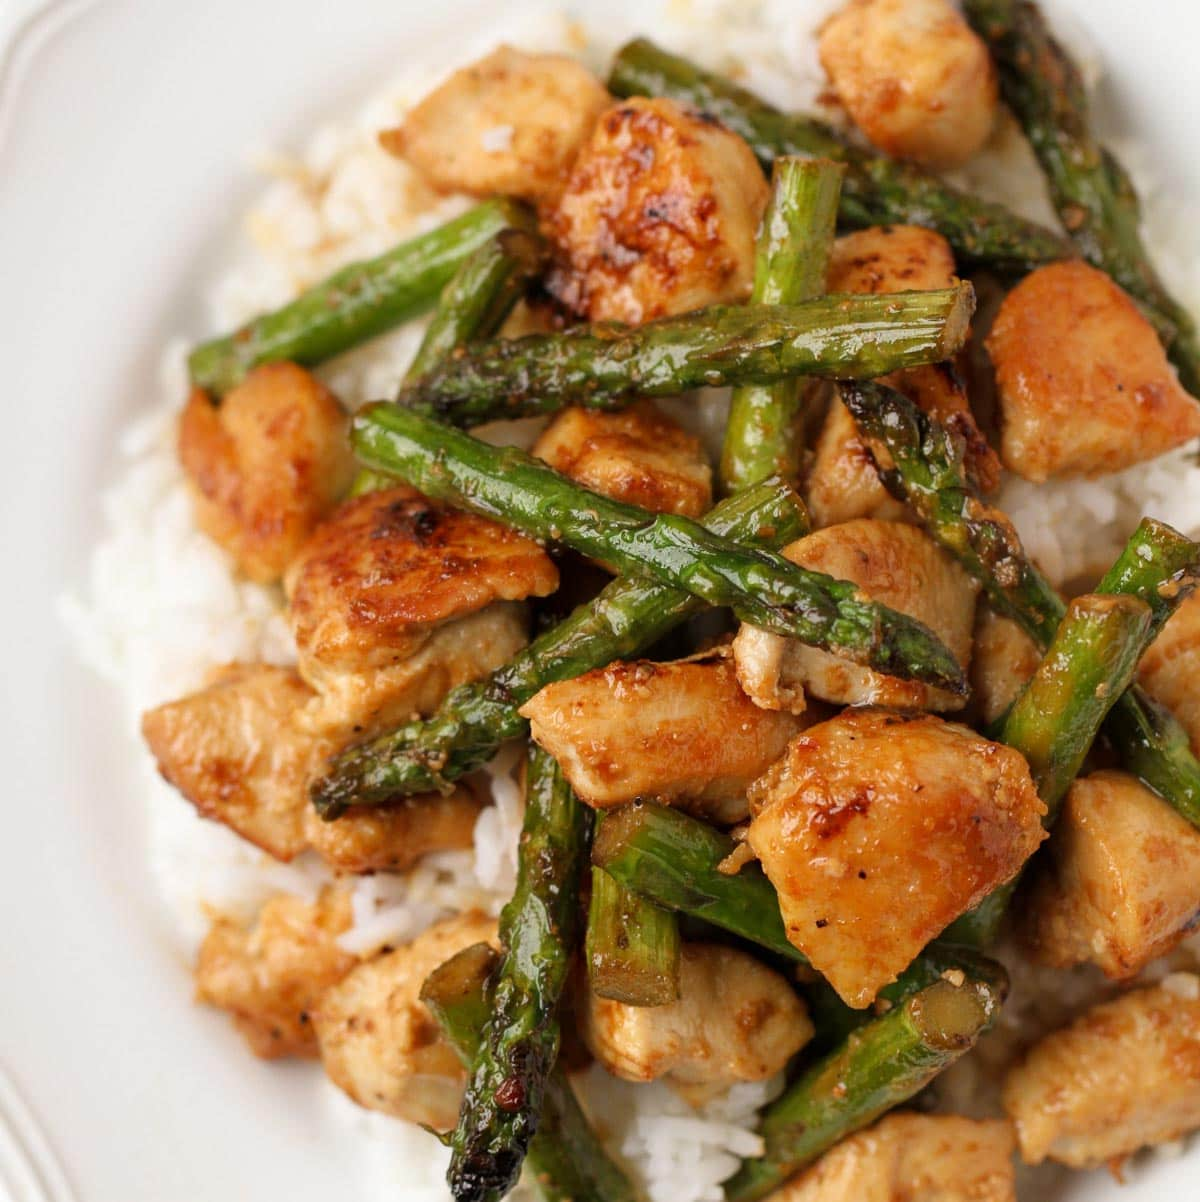 Lemon chicken and asparagus stir fry served over rice in a white bowl.